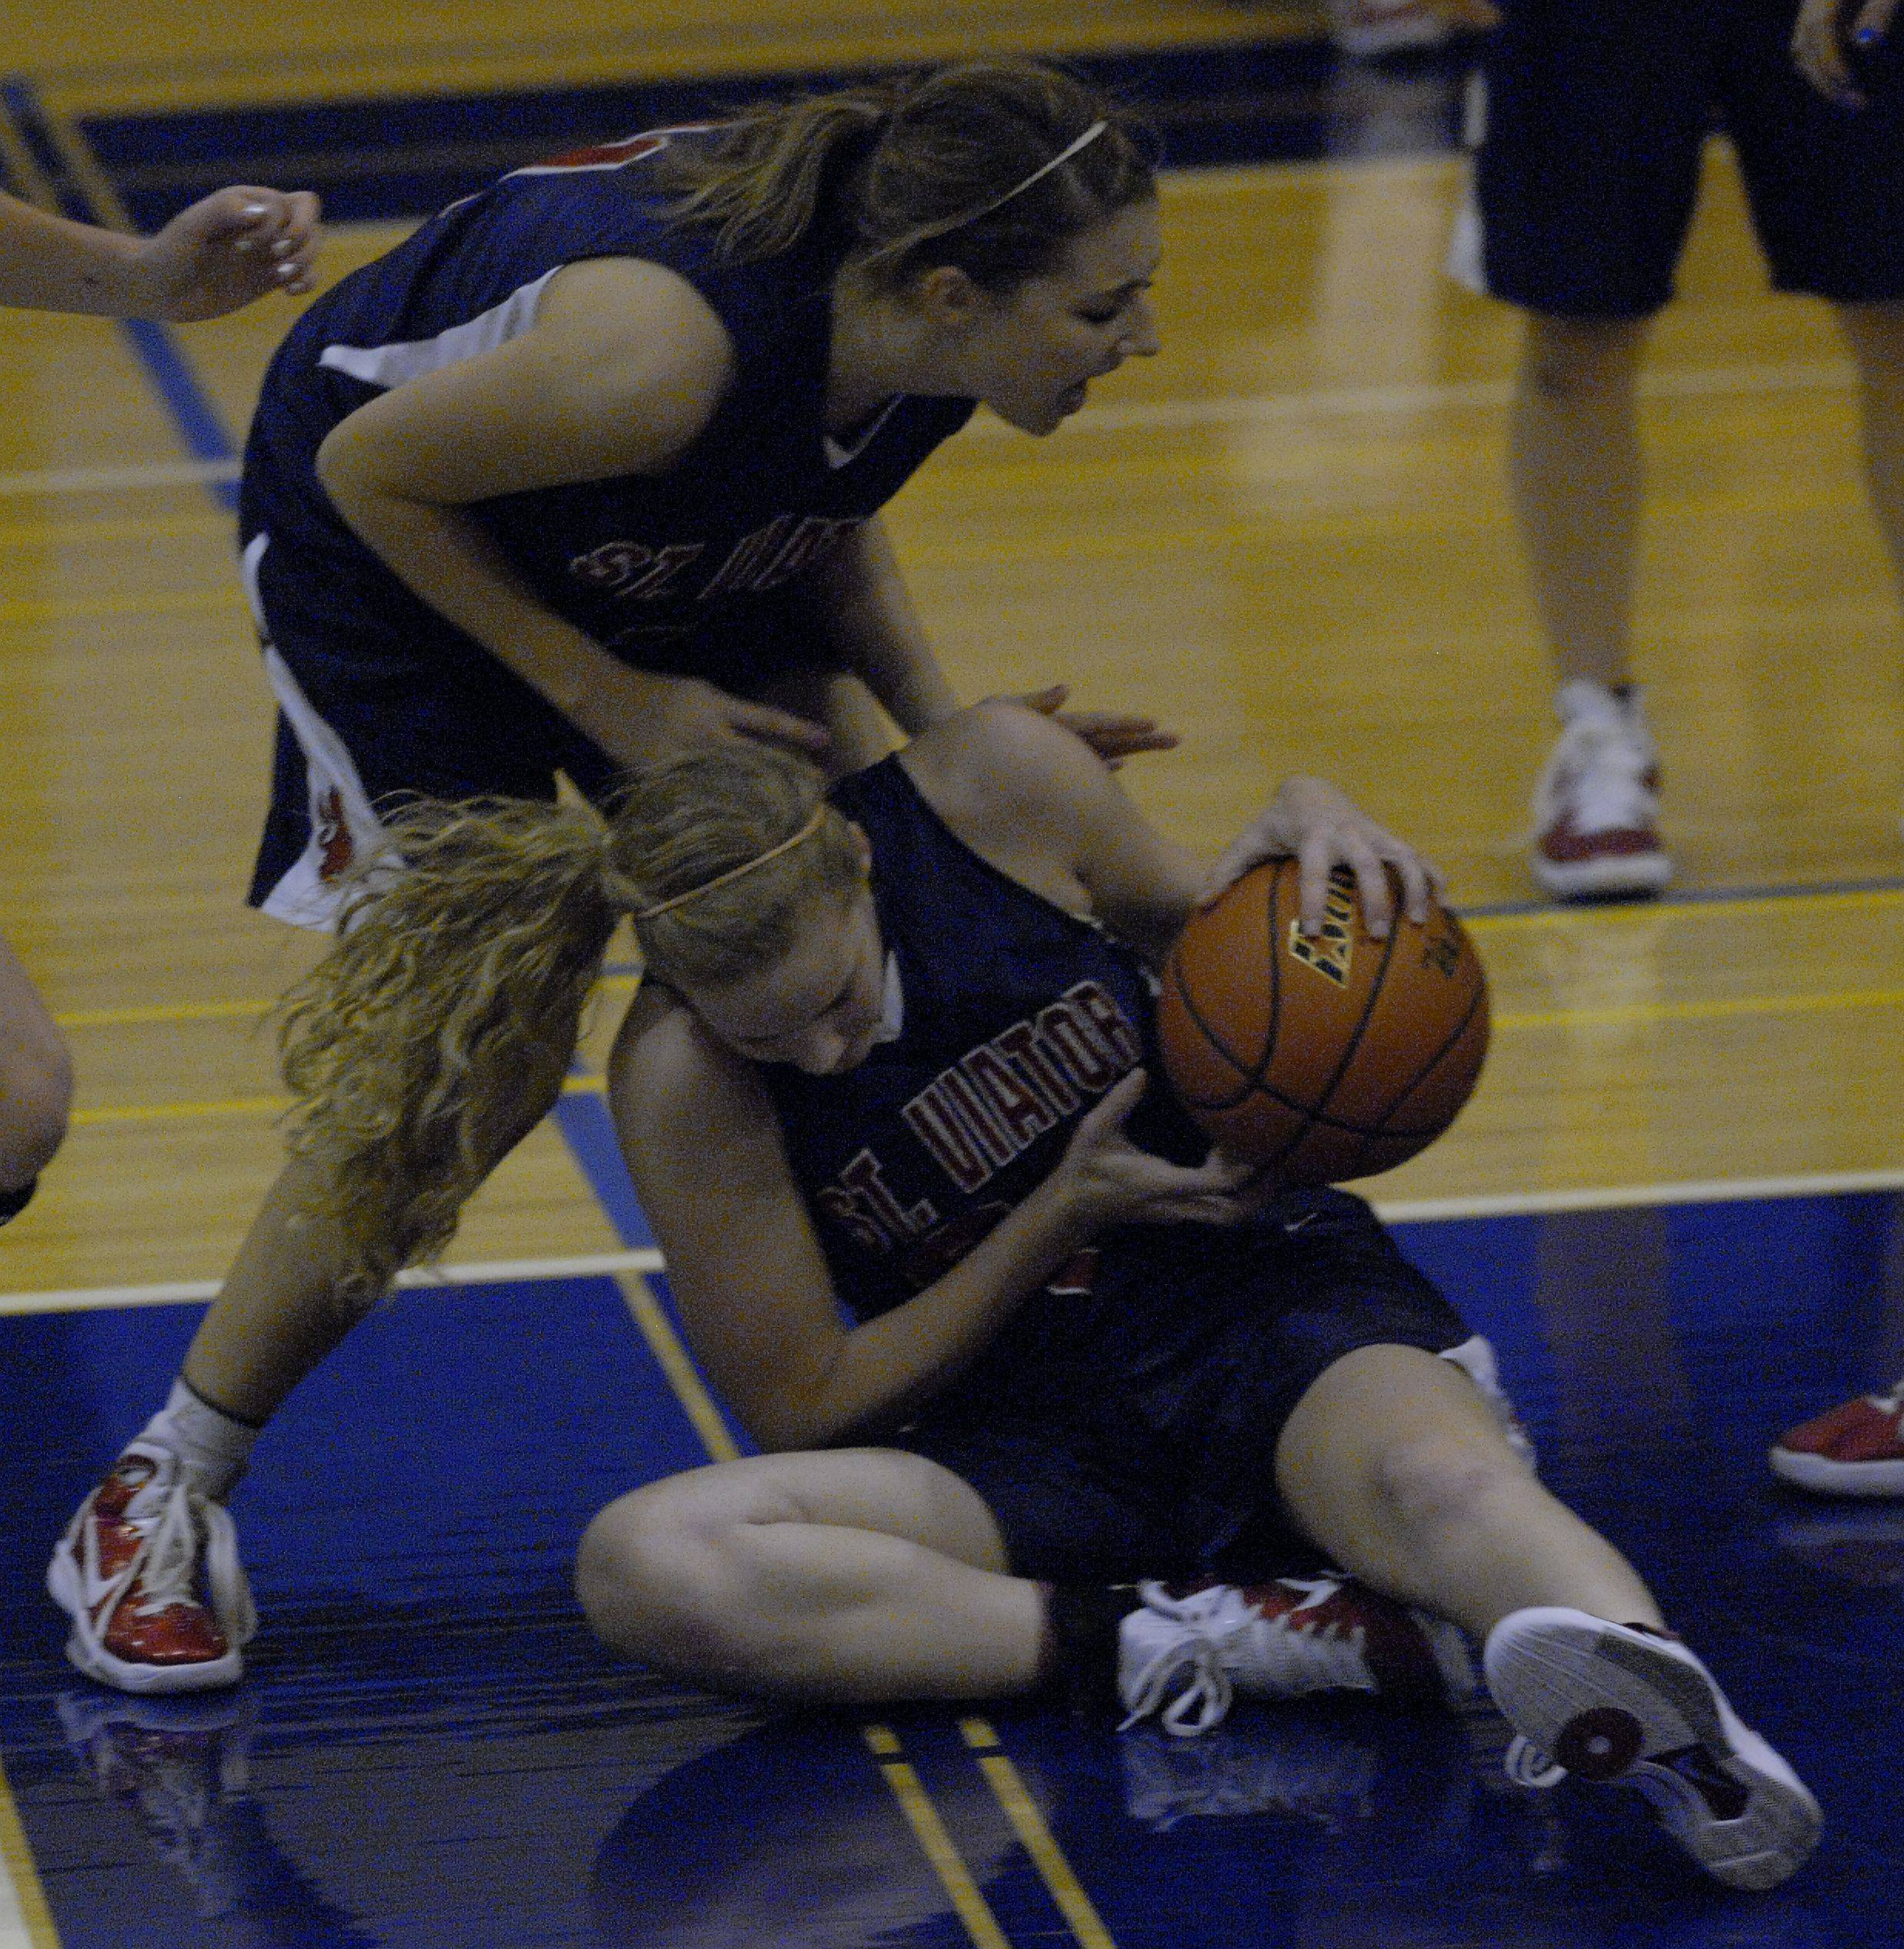 Images from the St. Viator vs Prospect girls basketball game in Mount Prospect on Monday, December 6th.